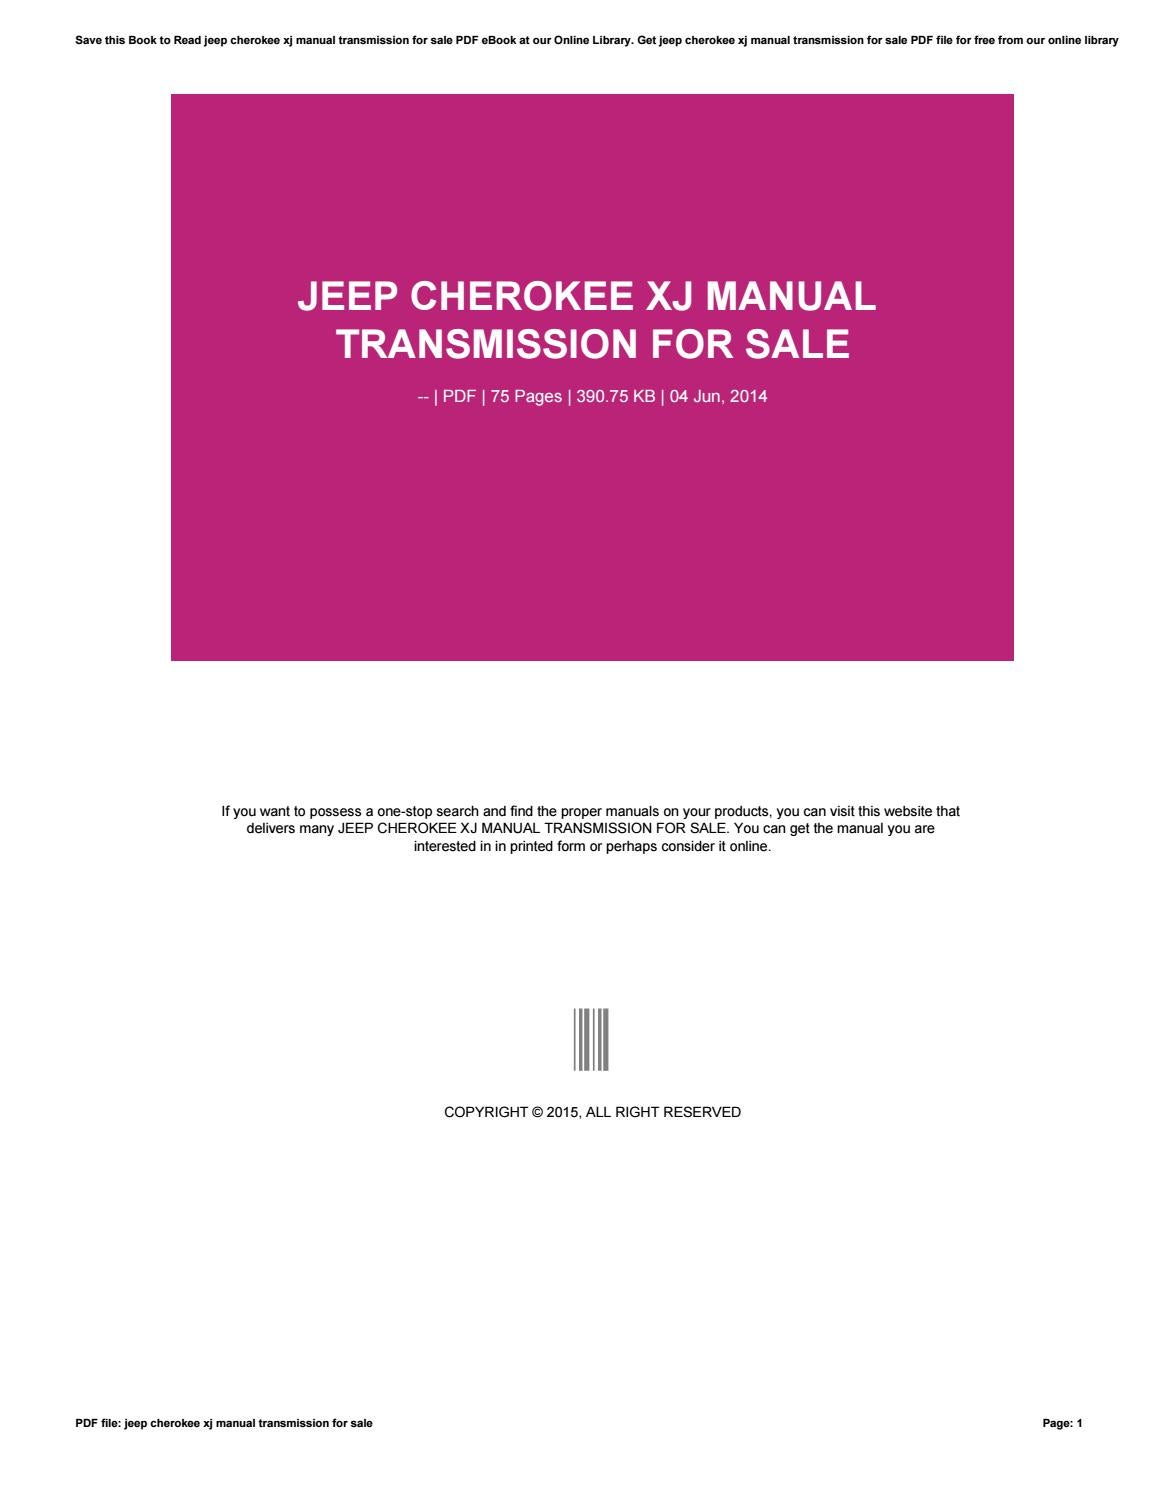 Manual Transmission Jeep Cherokee For Sale Manual Guide